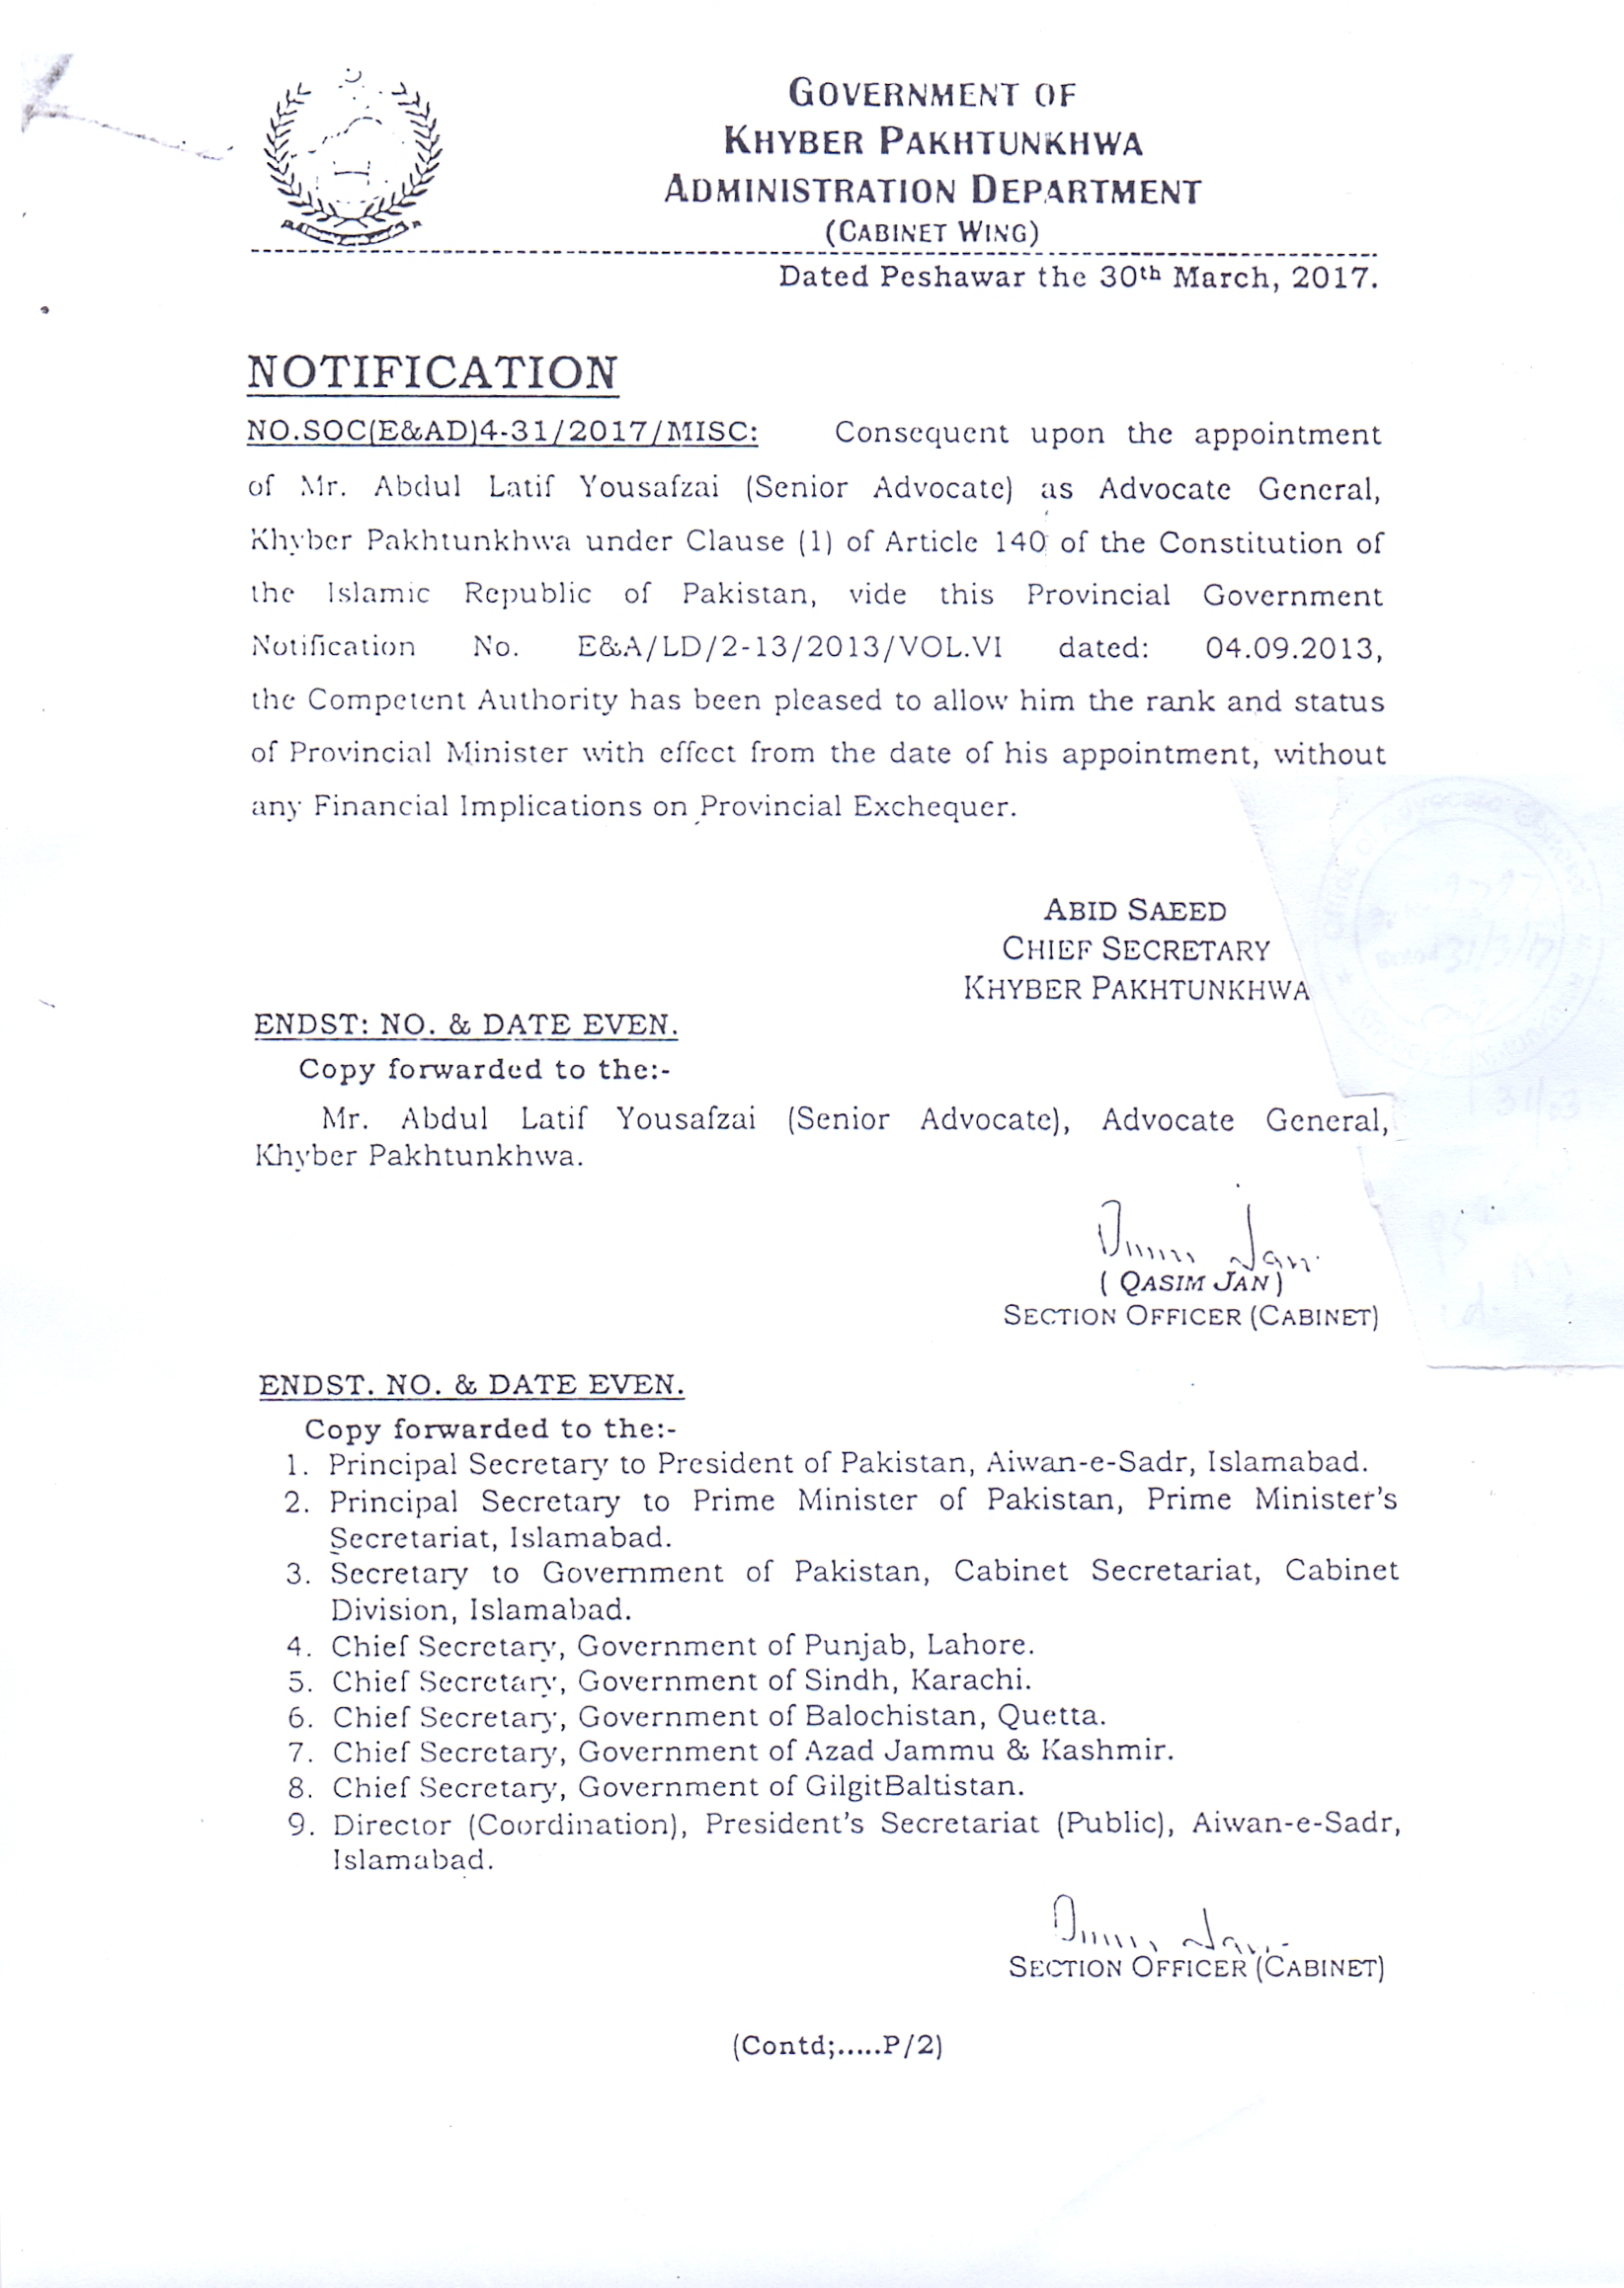 khyber pakhtunkhwa official web portal administration notification